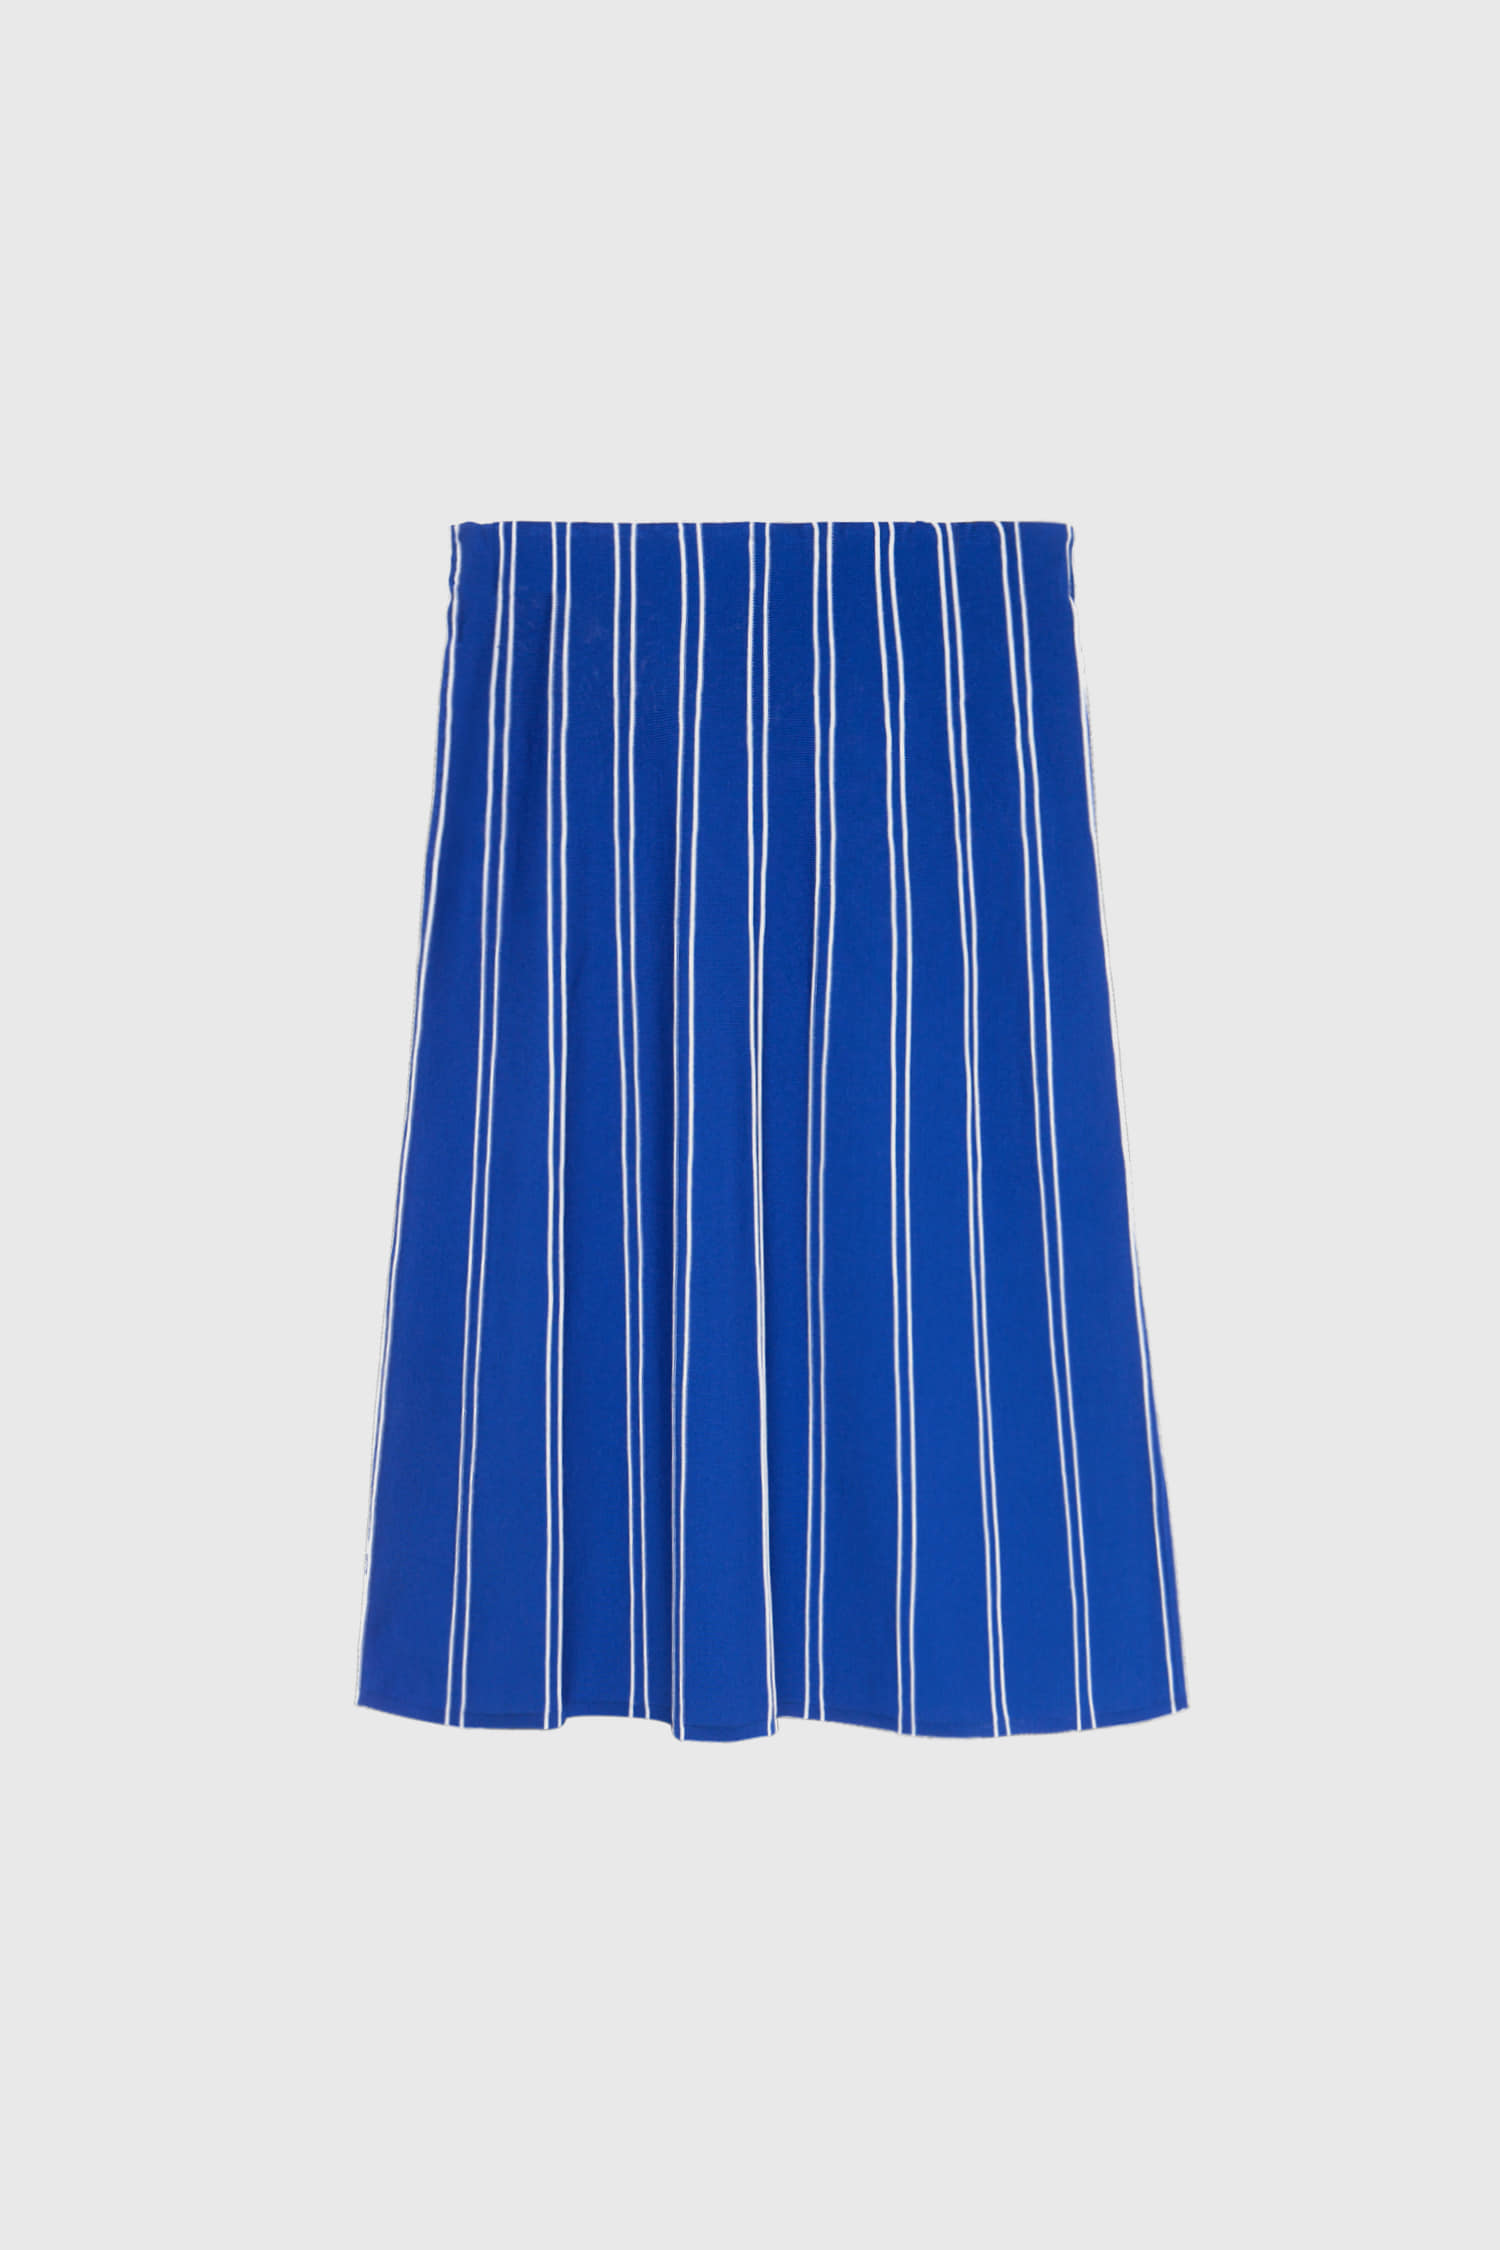 LINE SKIRT COBALT BLUE